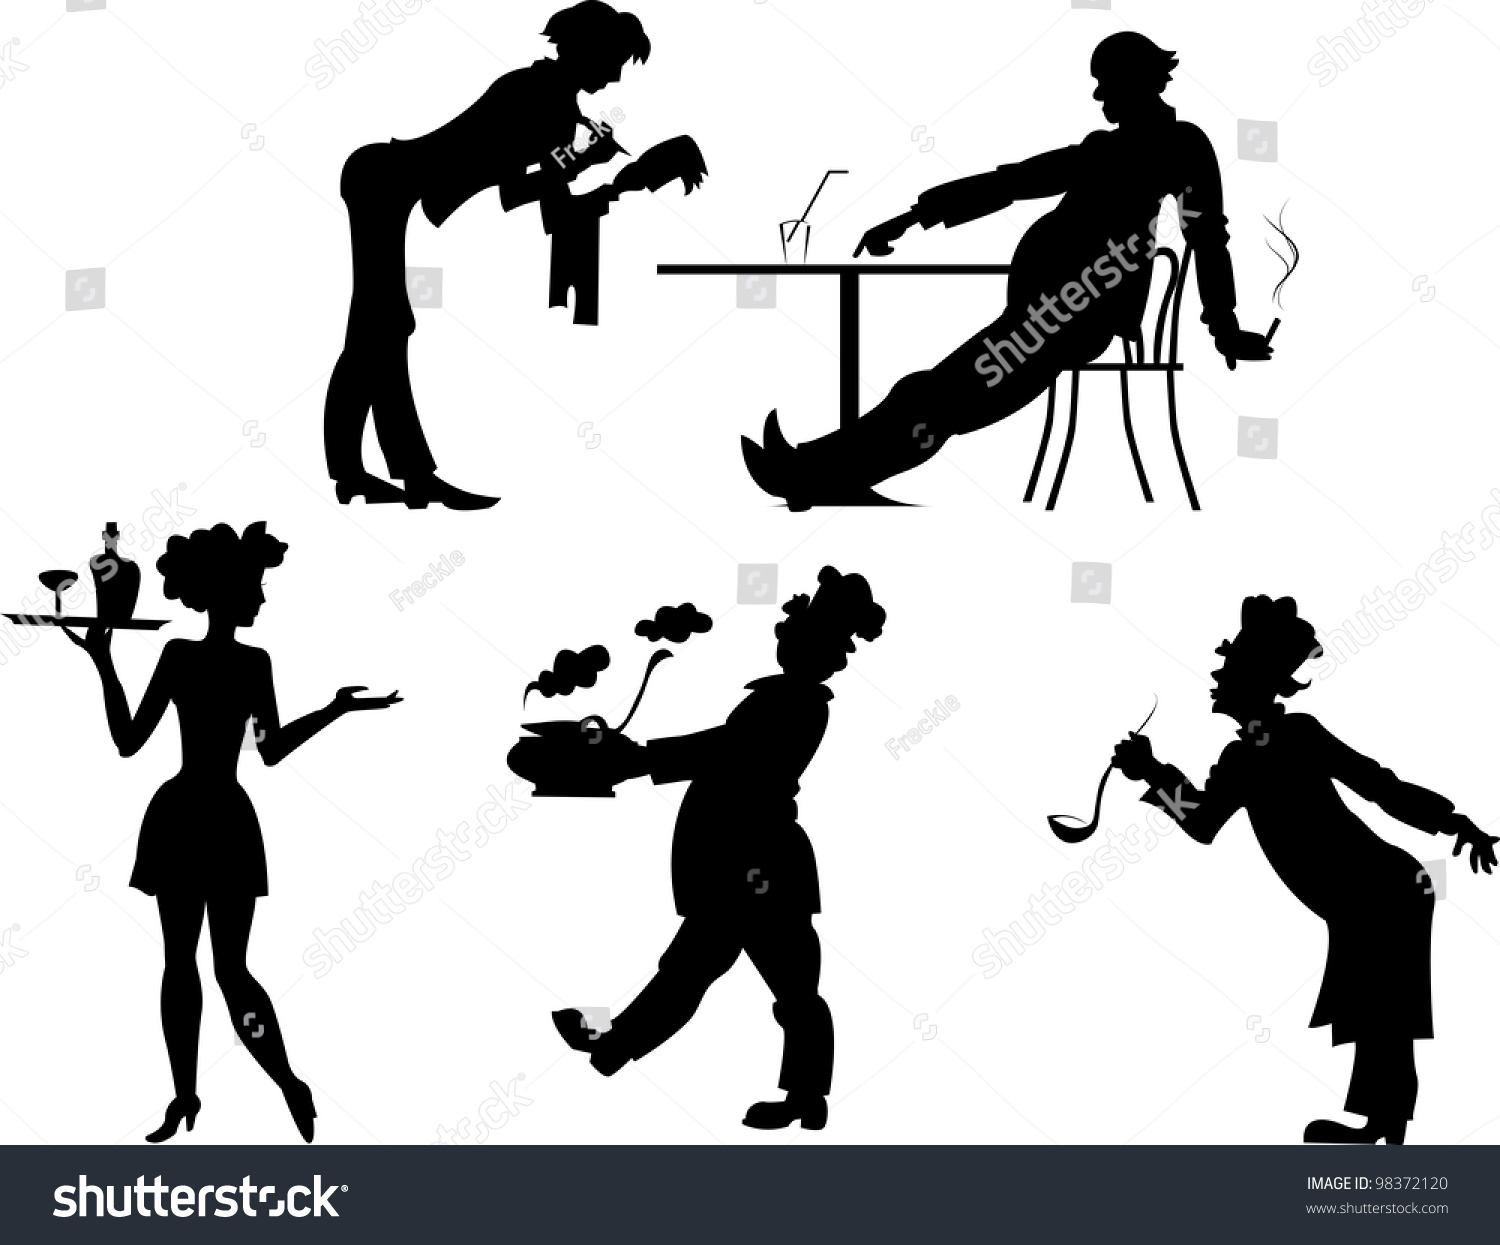 Restaurant Background With People Isolated Silhouettes People Restaurant Business On Stock Vector